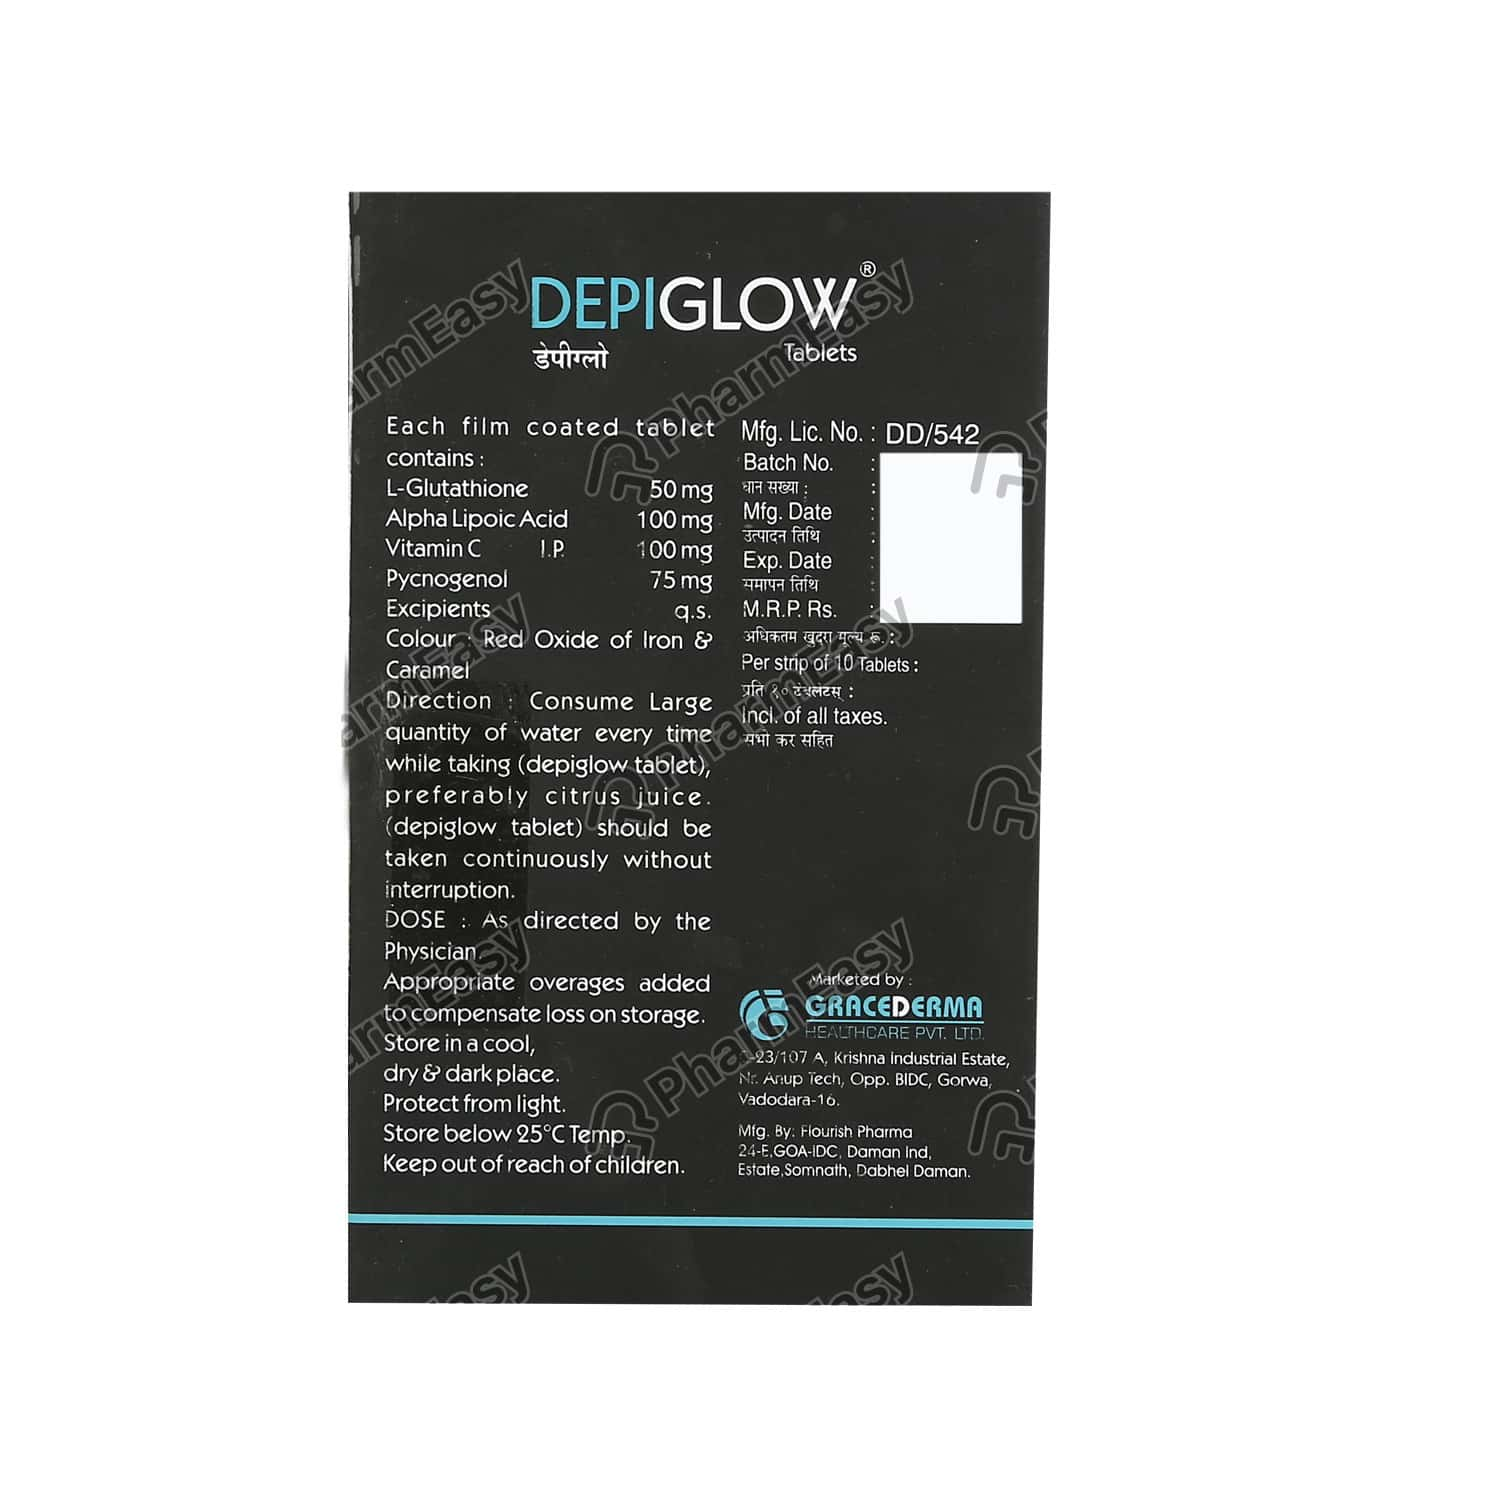 Depiglow Strip Of 10 Tablets